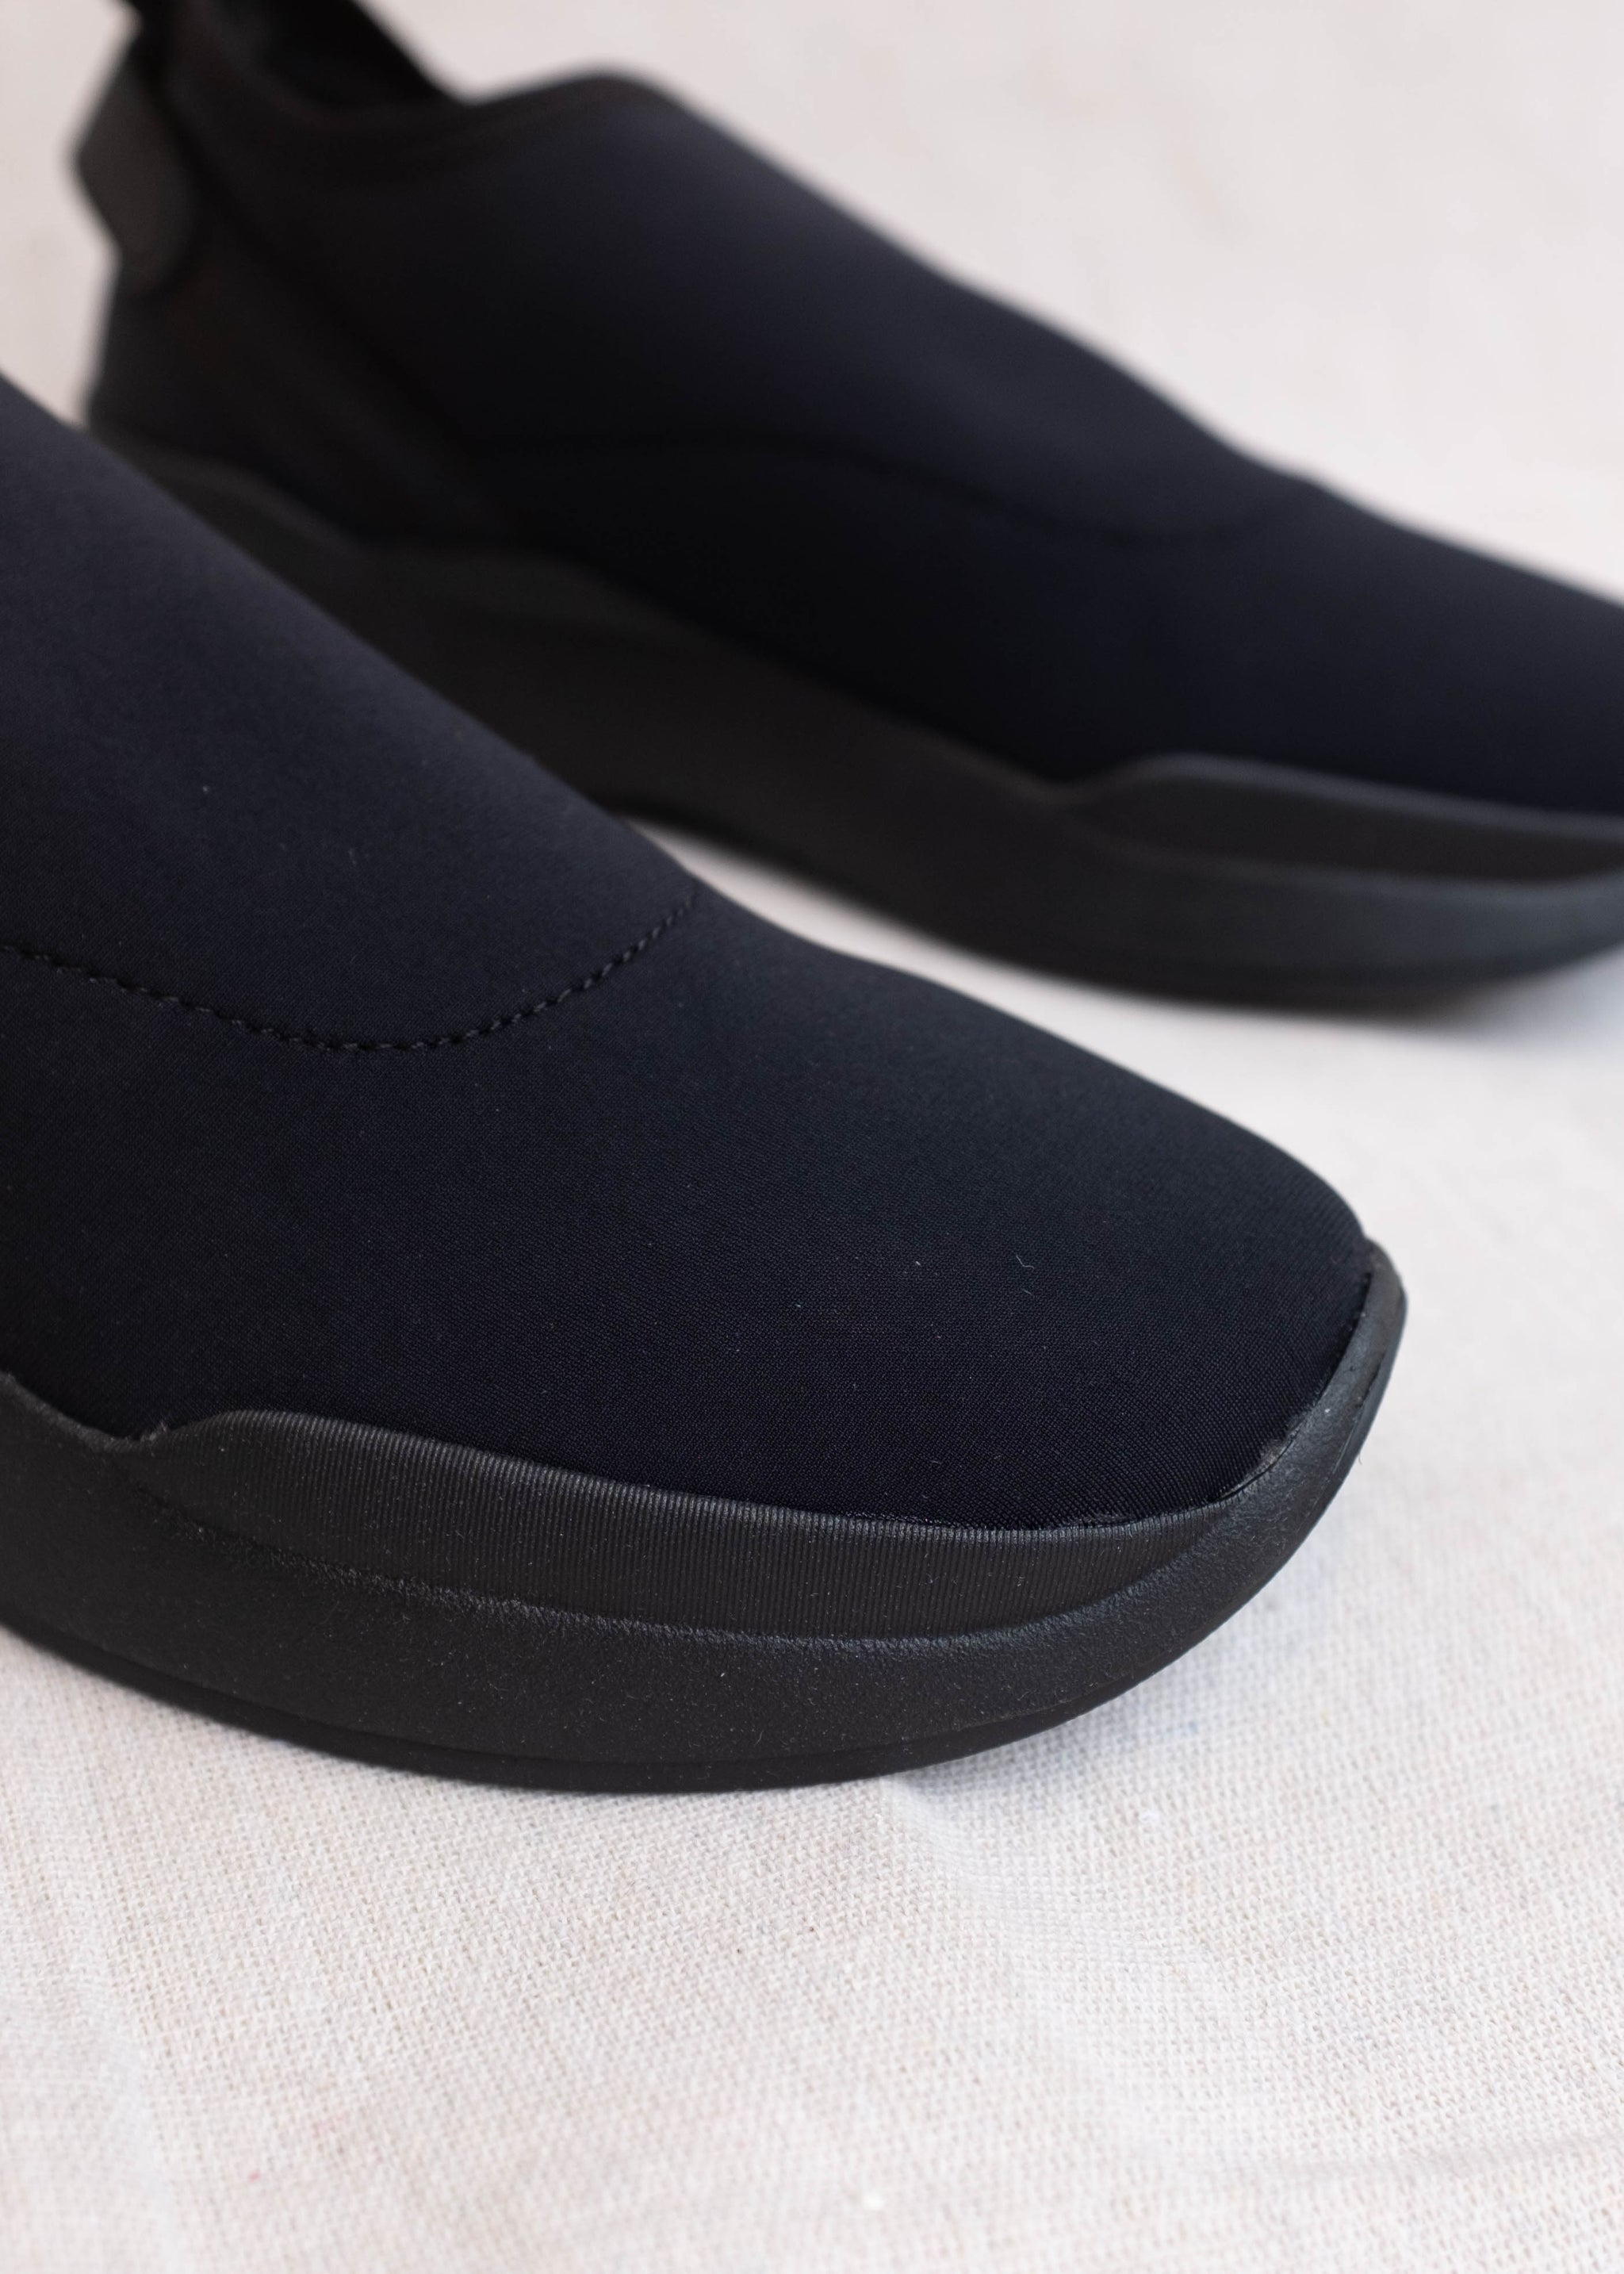 Detail view of stretchy black, laceless sneakers.